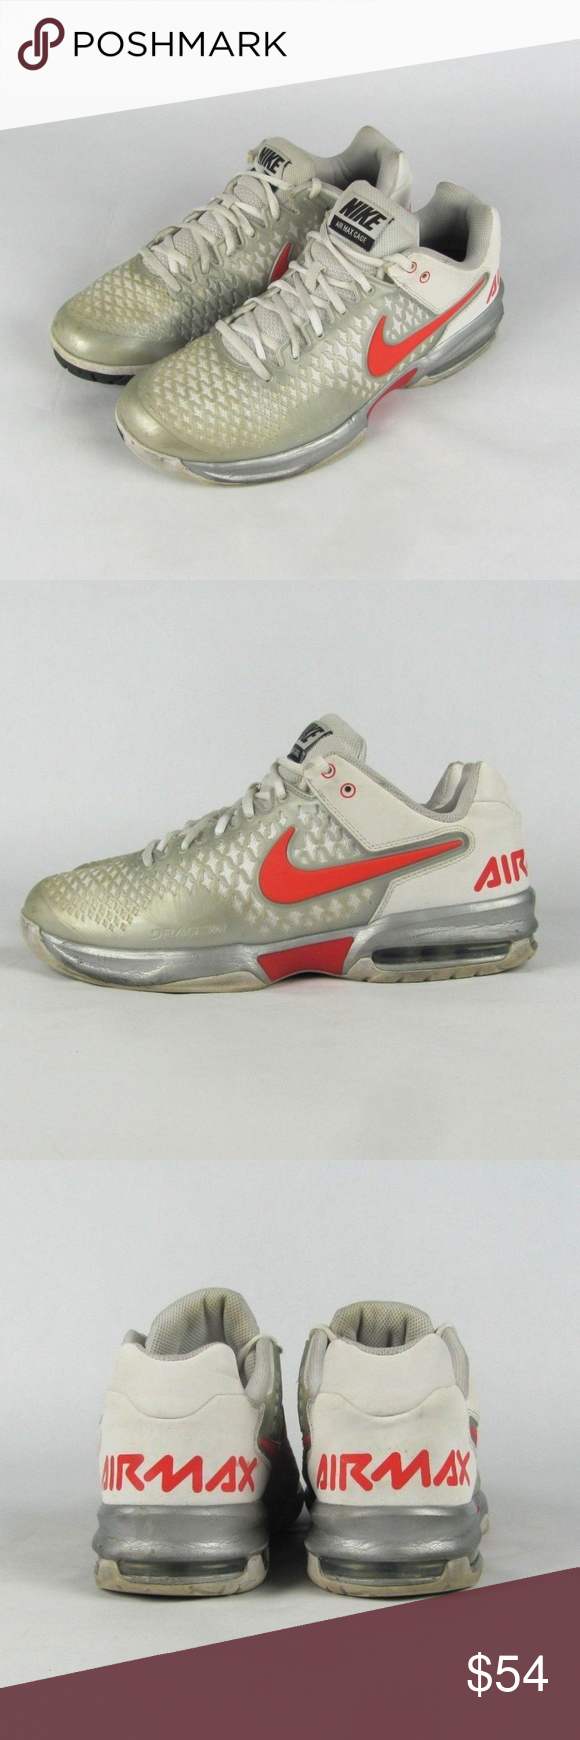 online store 33239 1d99d NIKE Air Max Cage Dragon Tennis Shoes Sneakers 9.5 The listed item is a  pair of pre-owned NIKE Air Max Cage Dragon Men s White Orange Gray Tennis  Shoes ...